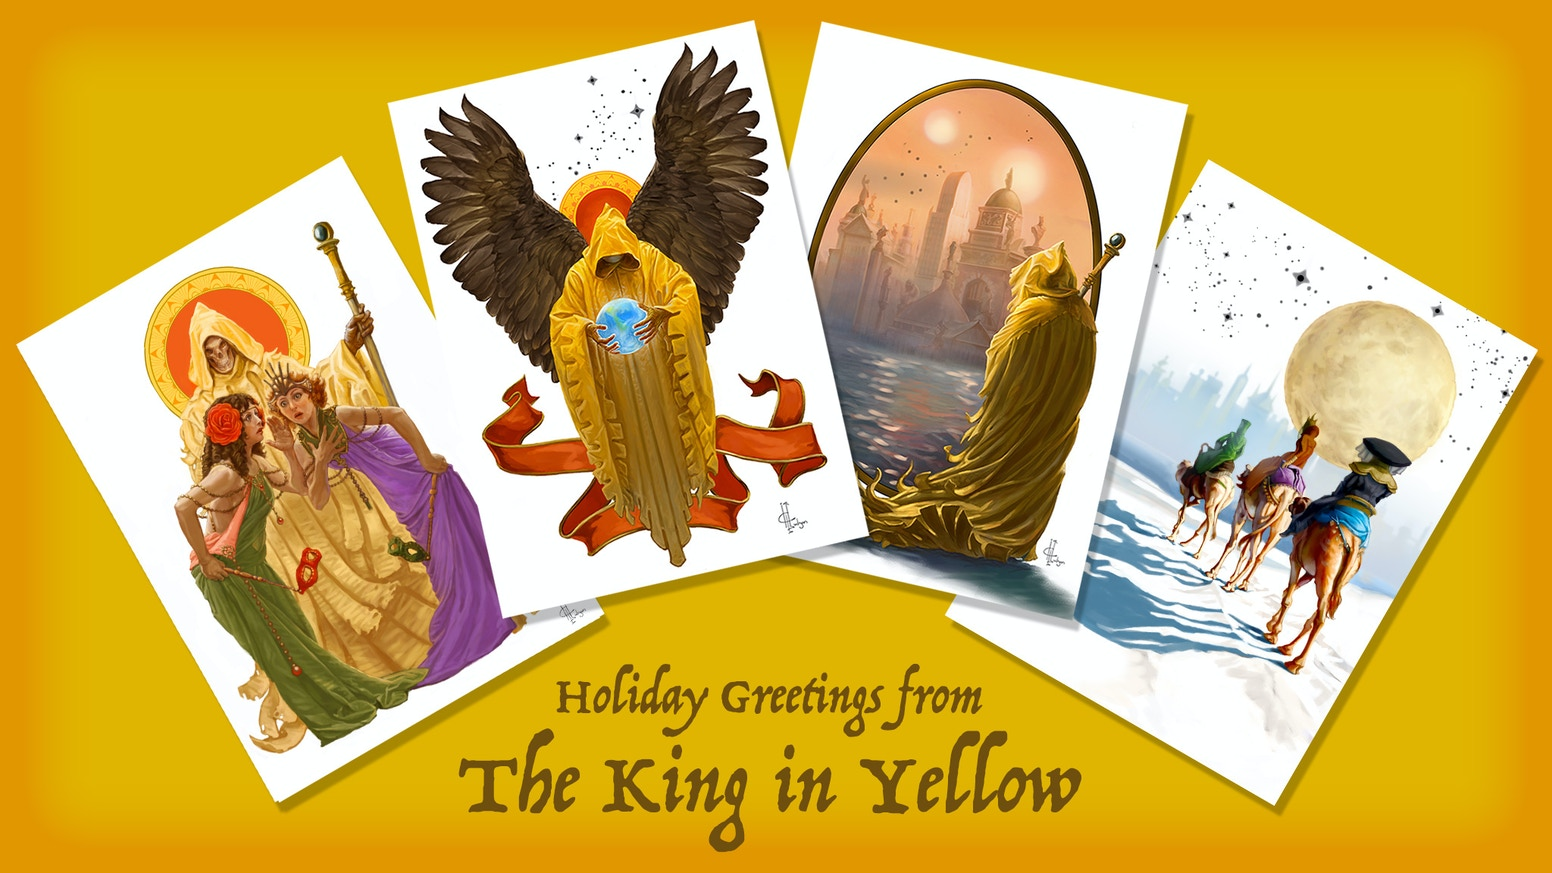 The King In Yellow Christmas Cards By Studio Wondercabinet Kickstarter